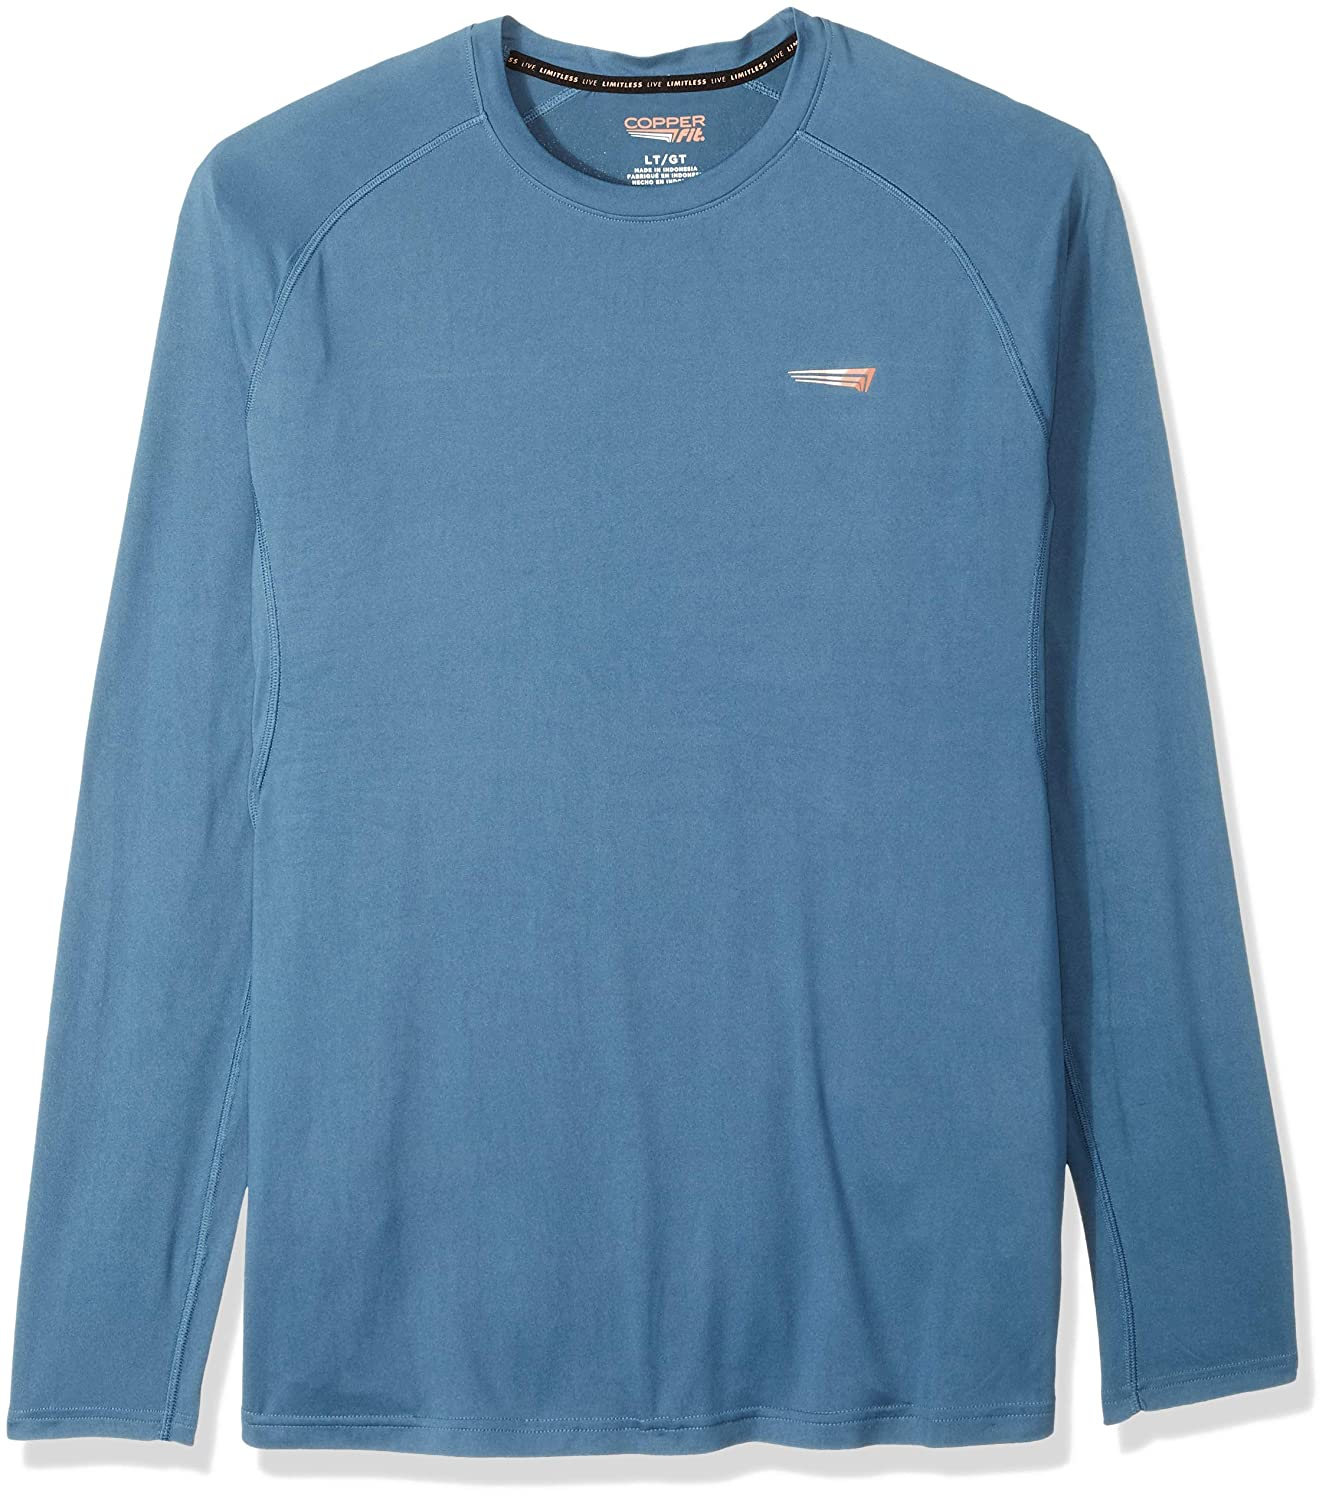 Copper Fit Mens Long Sleeve Crew Neck Tee